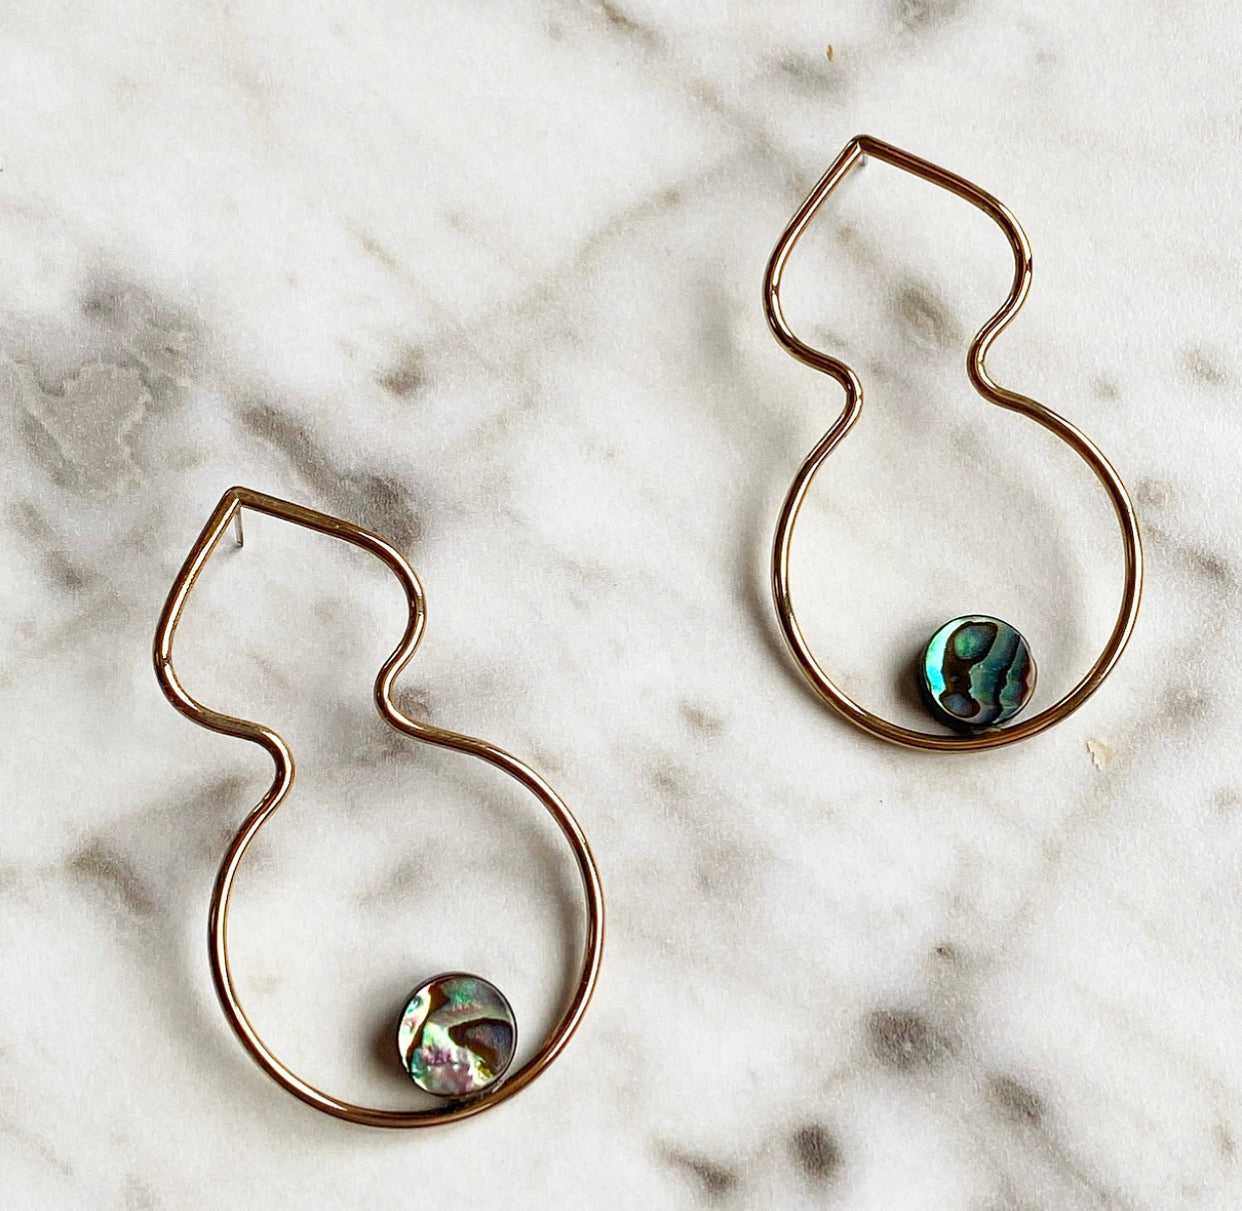 Organic Abalone Earrings